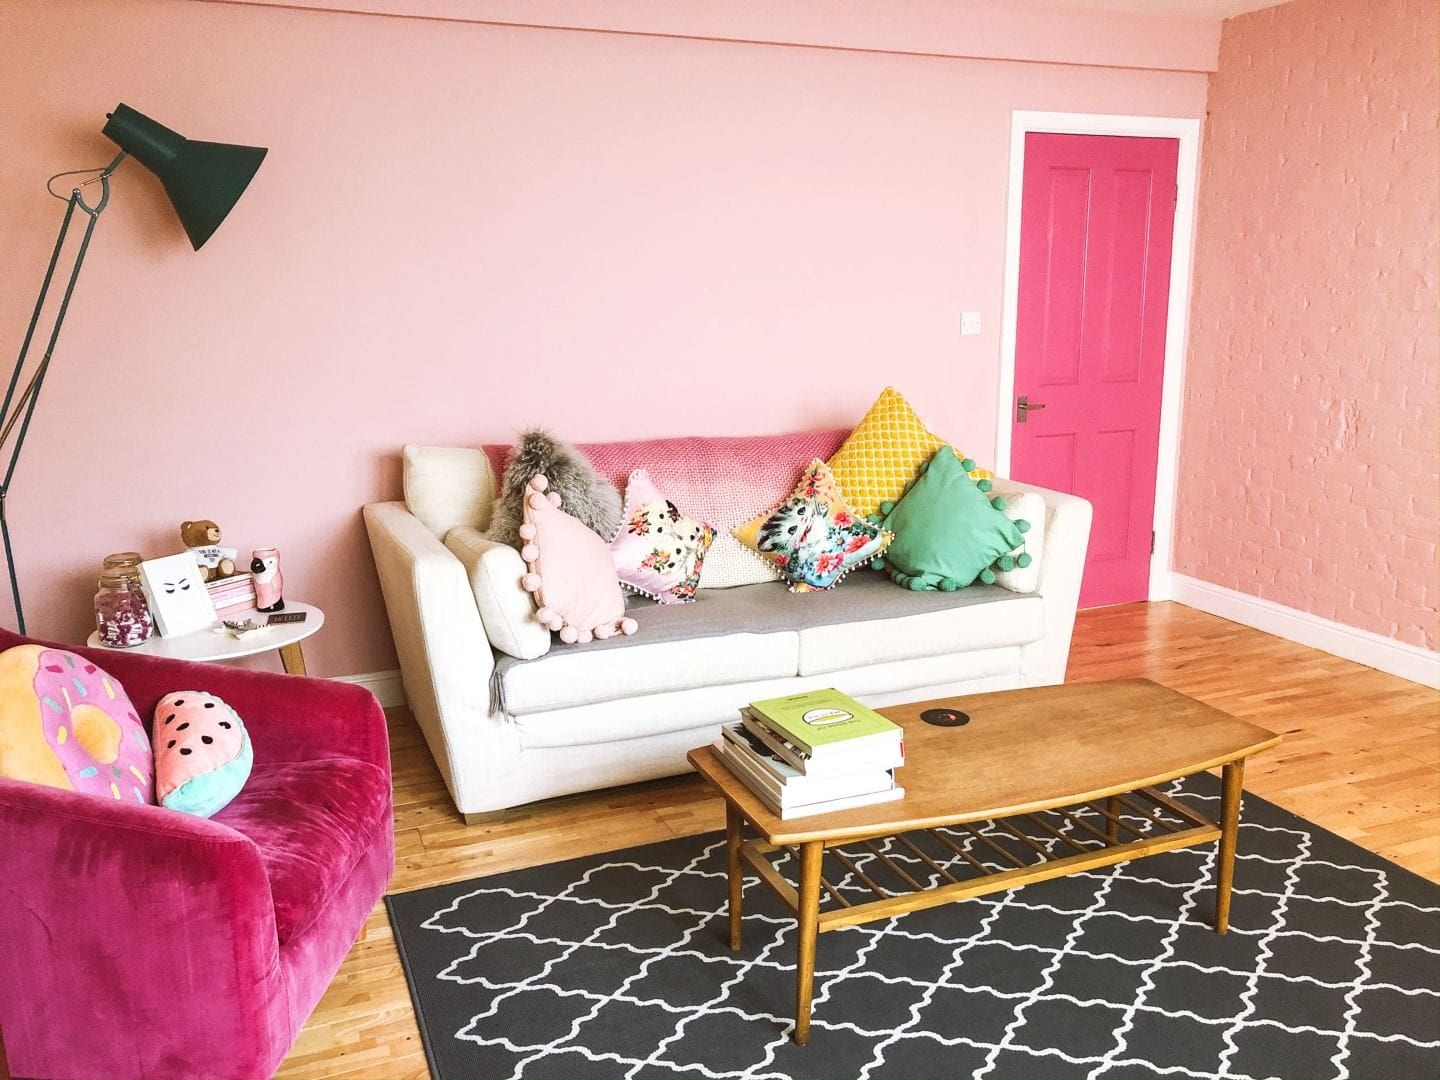 How To Make Your Living Room More Colourful :: Interior Door Paint Ideas pink living room